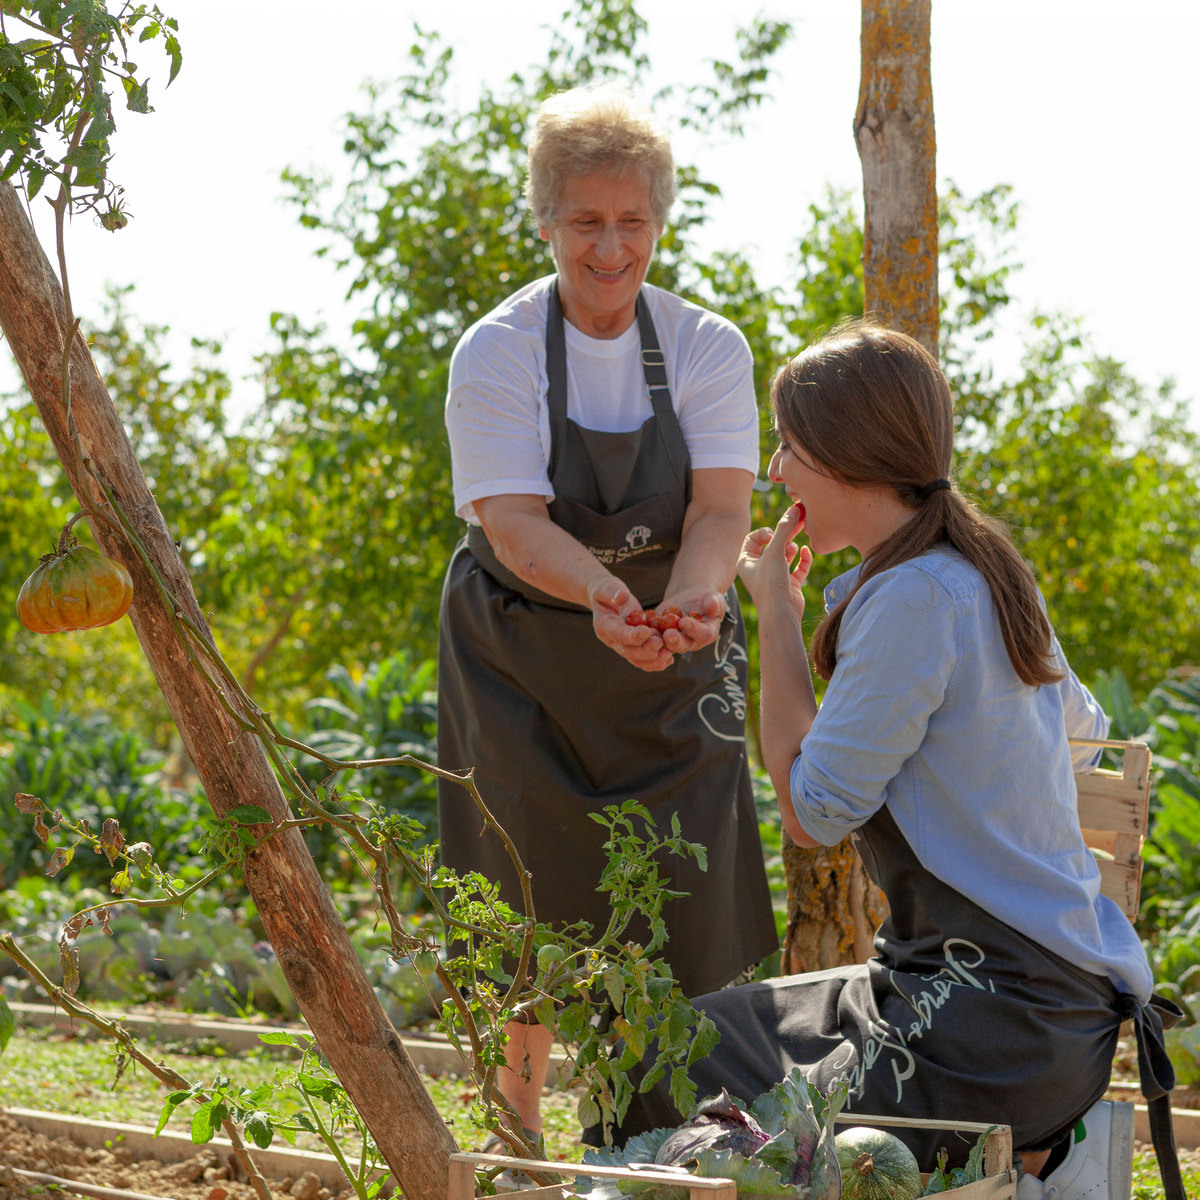 Our Mamma Olga is a chef, teacher and remarkable storyteller. Follow her through our garden as she spins one of her magical tales...⁠ 🌽🍅🥕 ⁠ ⁠ #BorgoSantoPietro #BorgoSantoPietroLiving https://t.co/FwGfy7ey2y